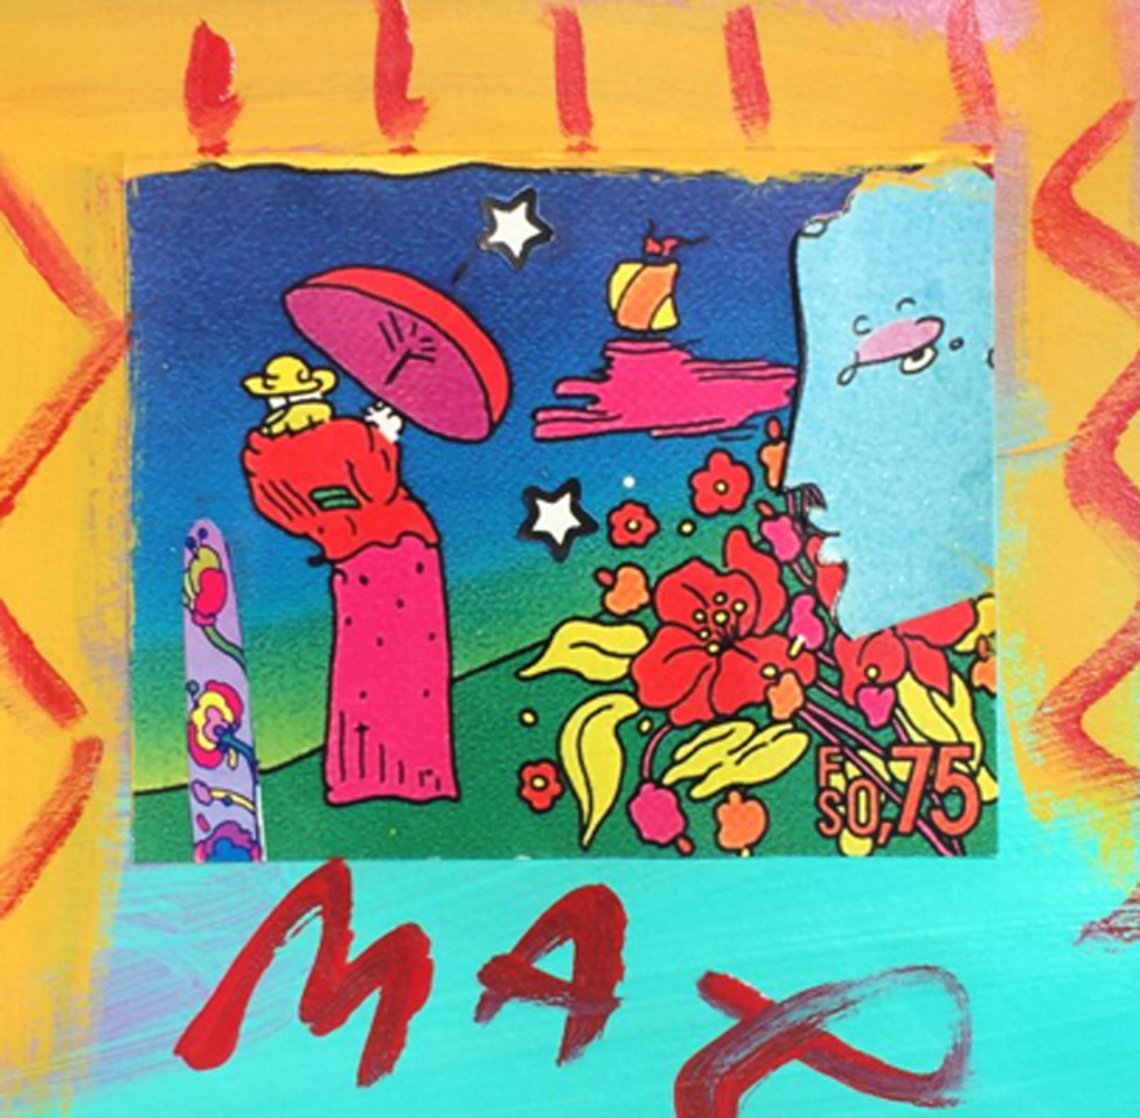 Blue Profile and Umbrella Man Unique 1994 19x18 Works on Paper (not prints) by Peter Max